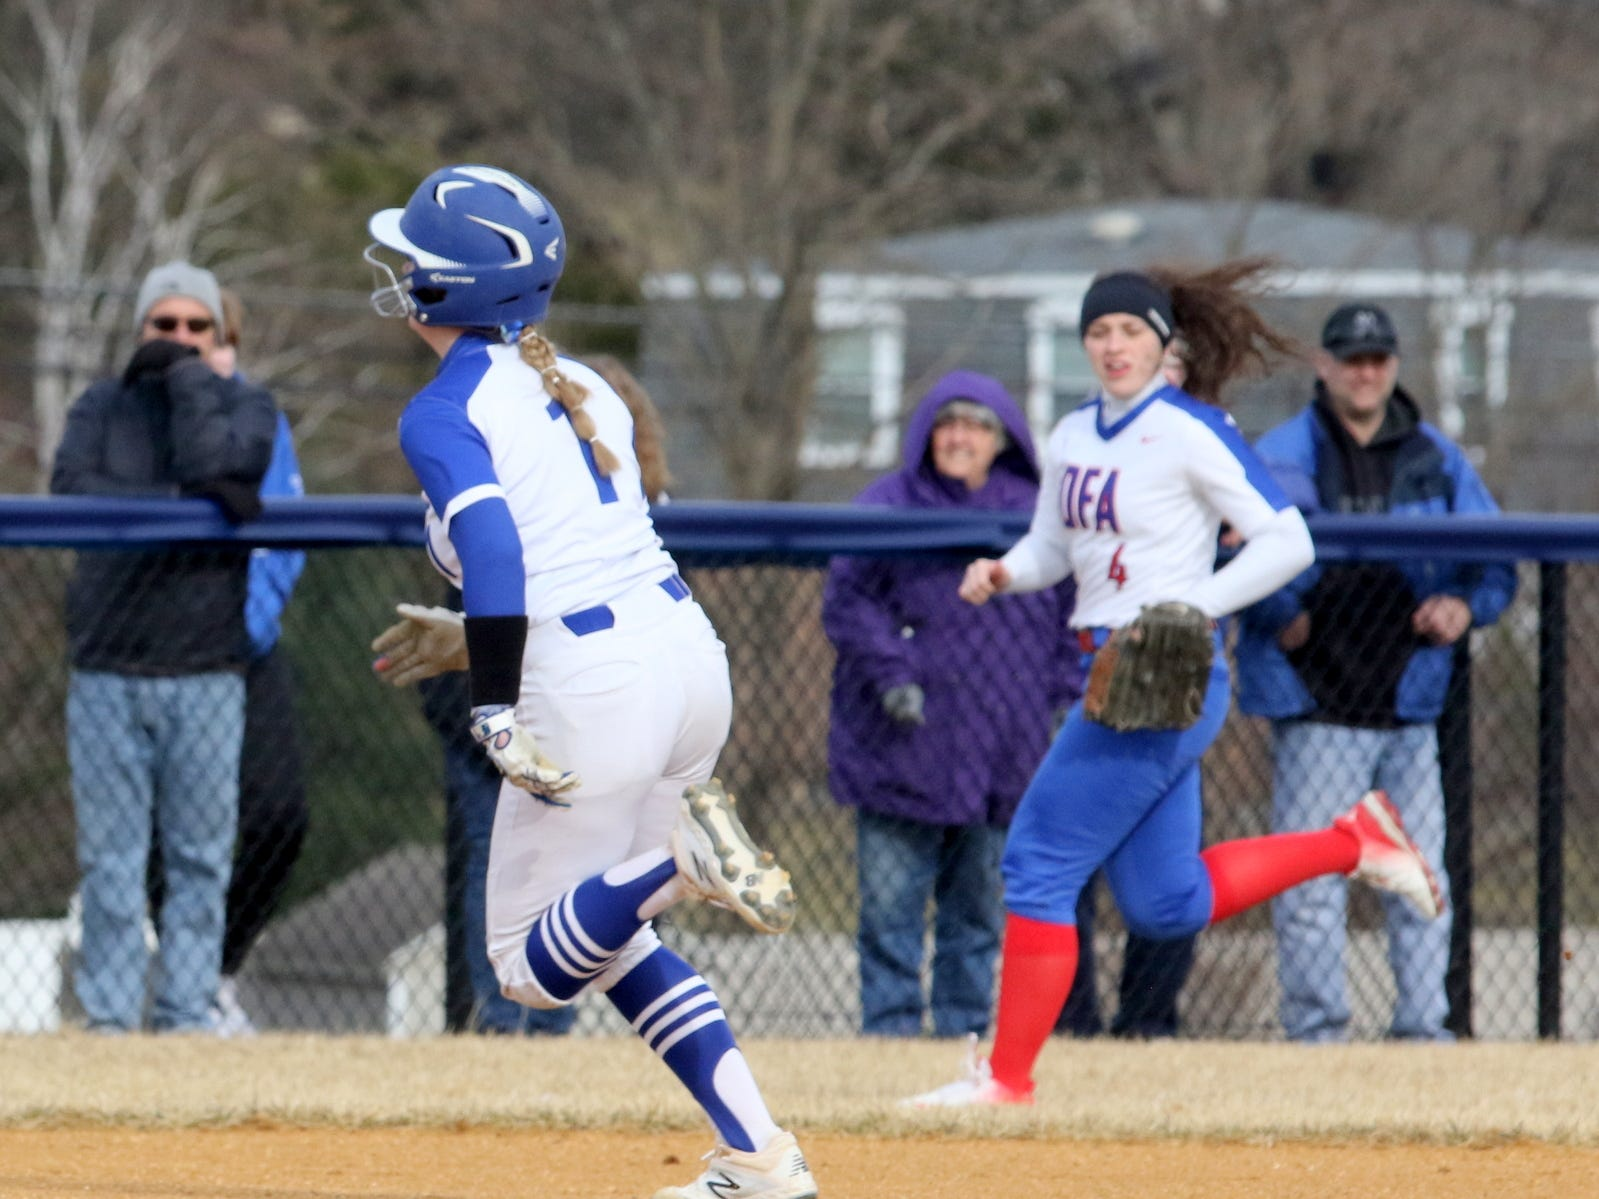 Owego at Horseheads softball April 4, 2019 at Horseheads Middle School.